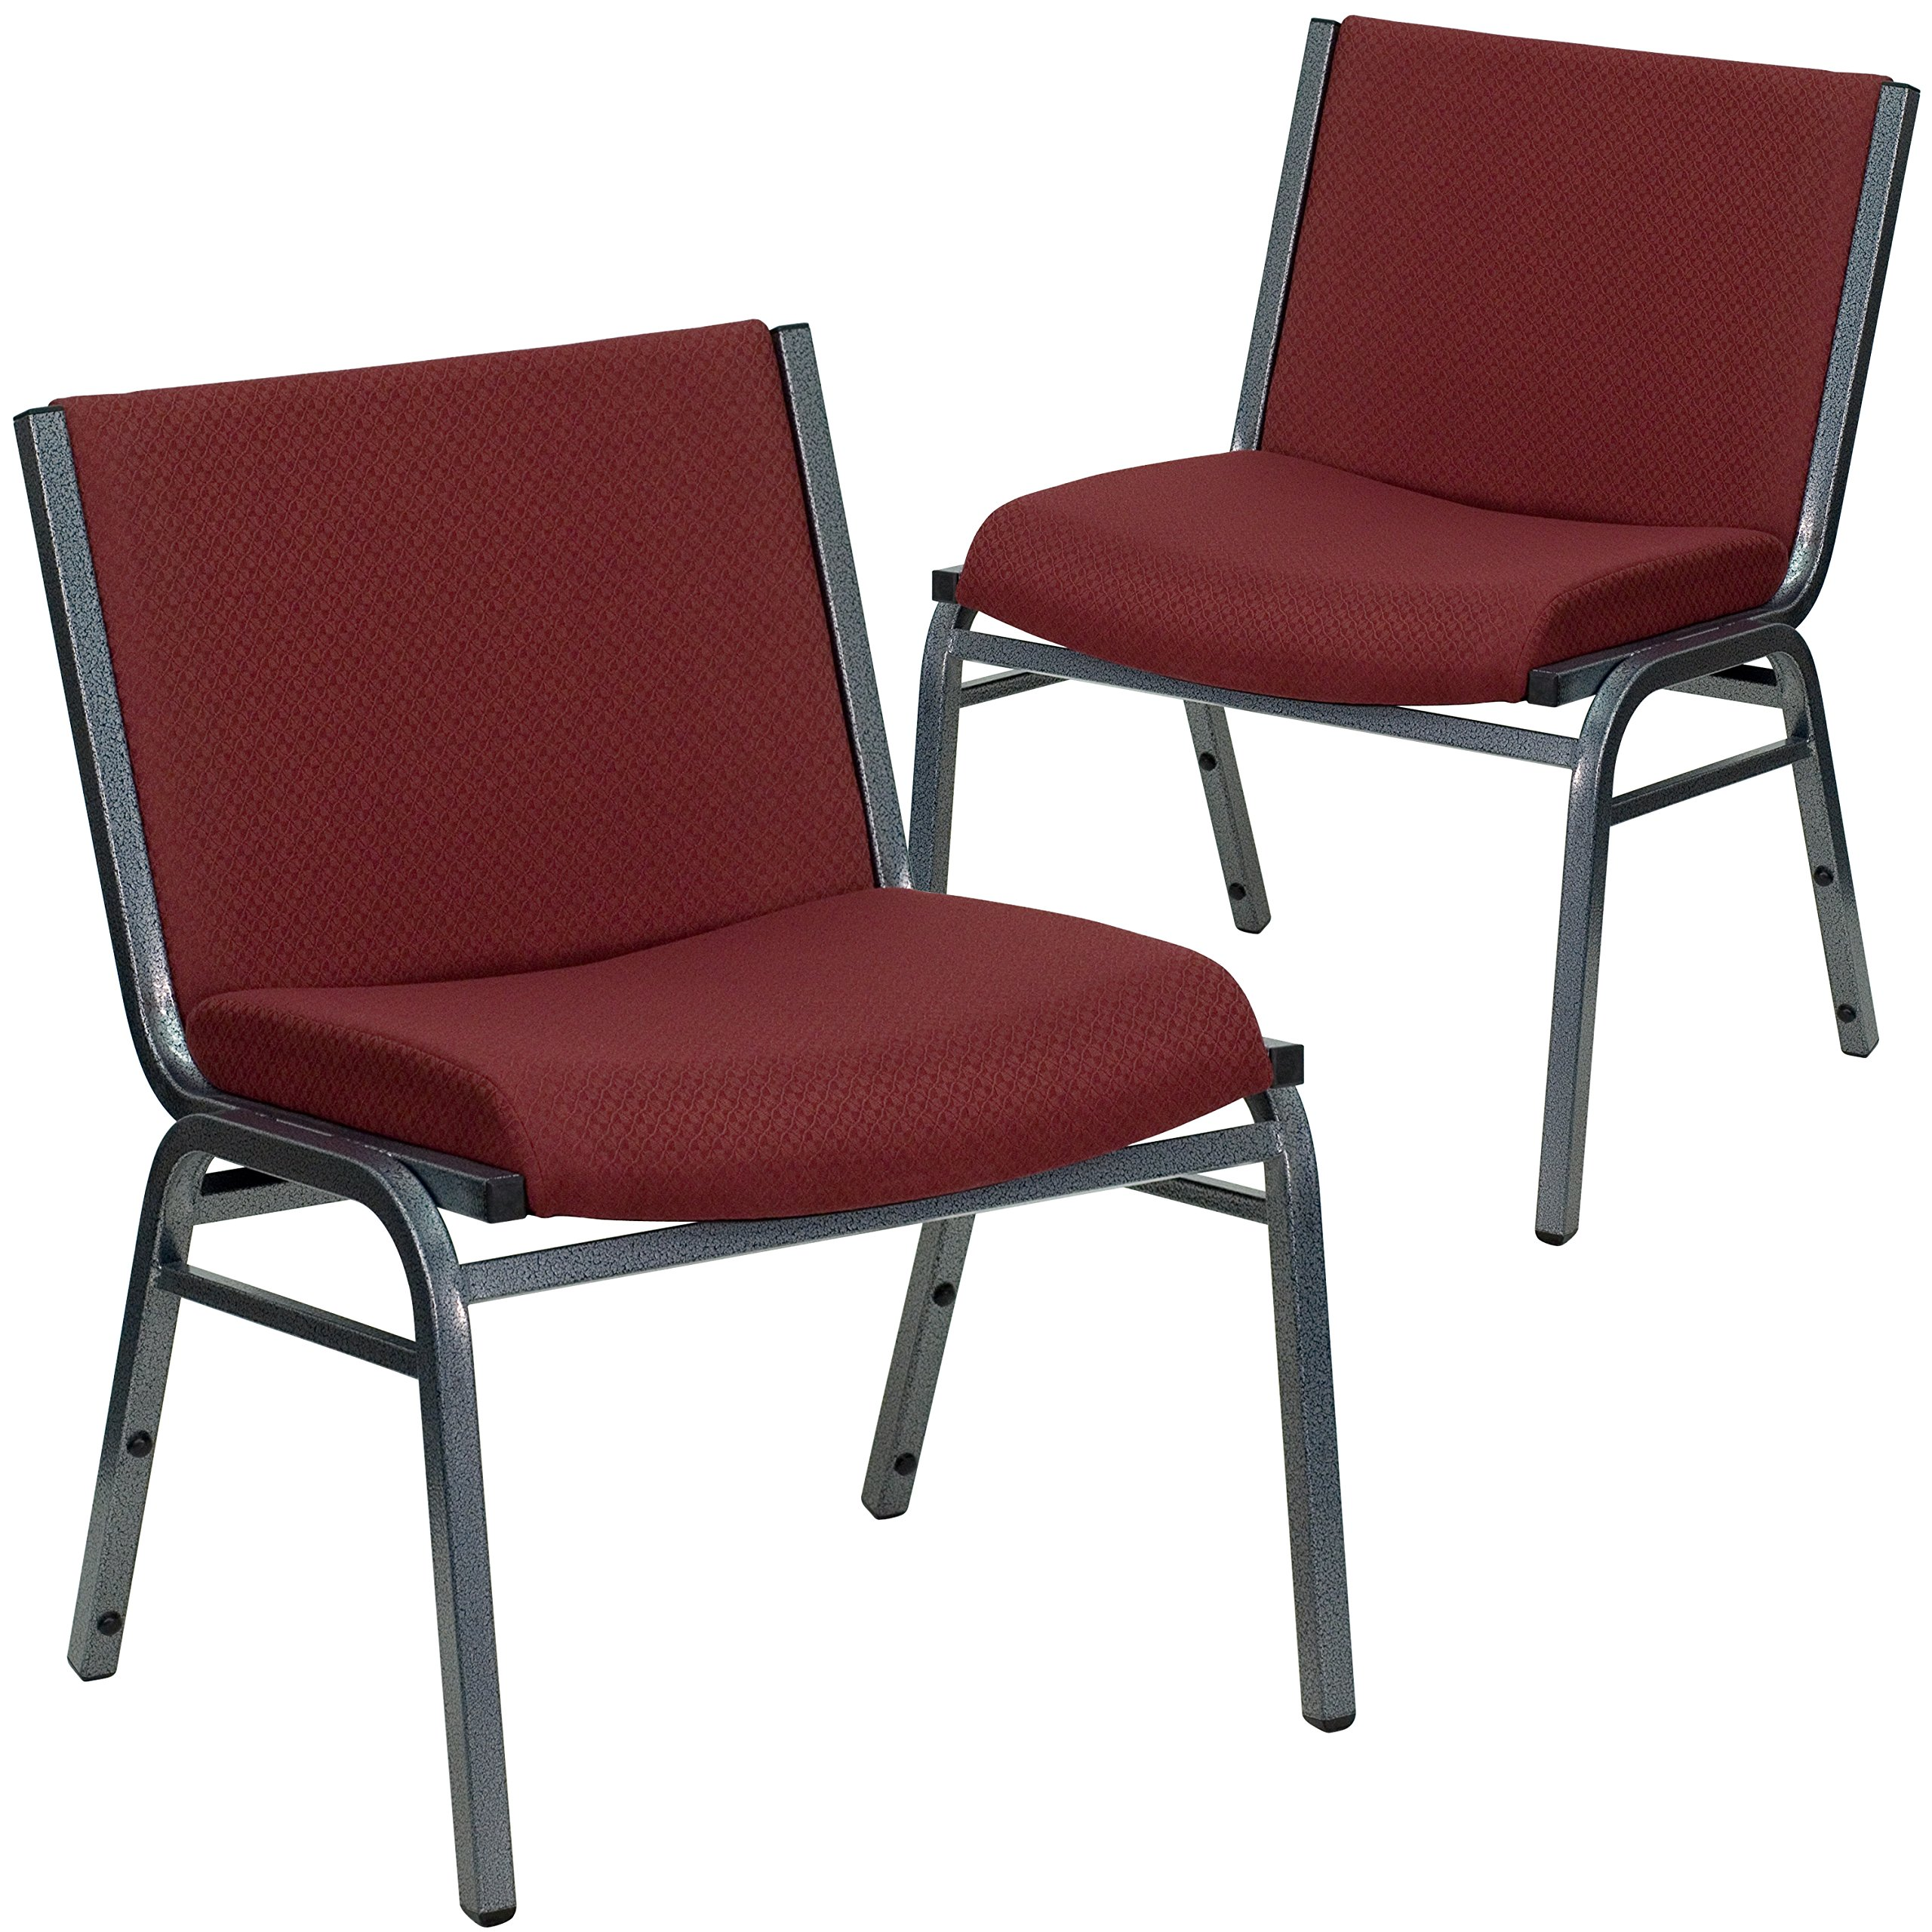 Flash Furniture 2 Pk. HERCULES Series Big & Tall 1000 lb. Rated Burgundy Fabric Stack Chair by Flash Furniture